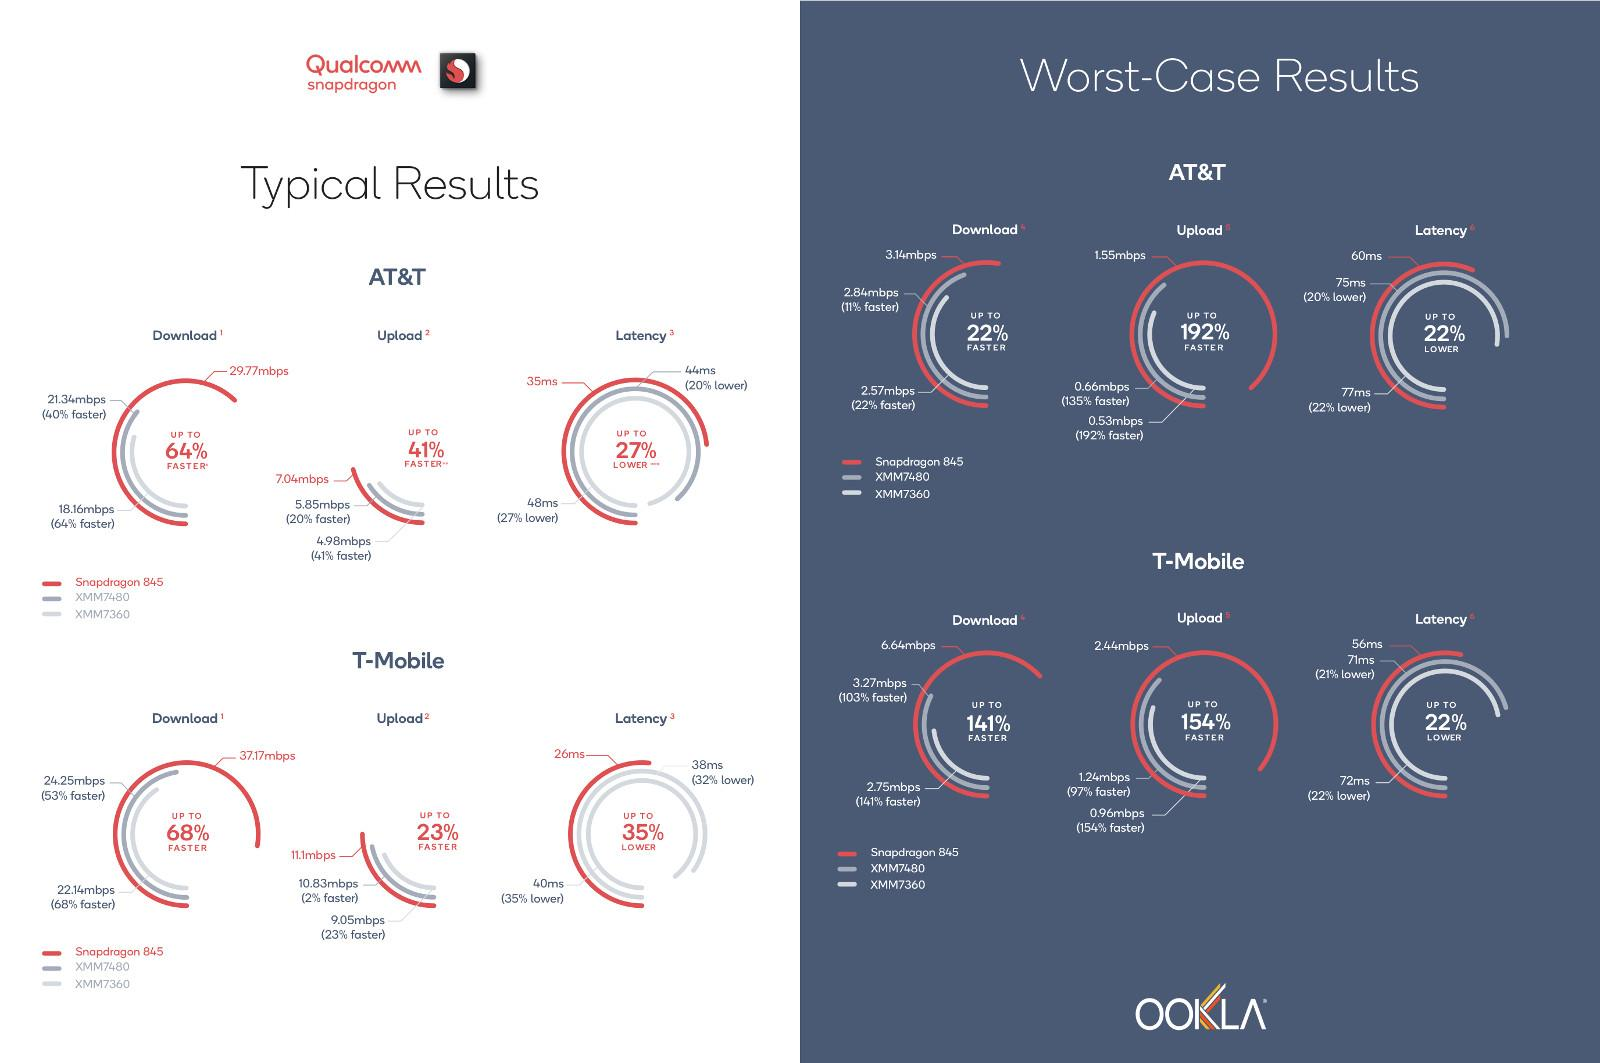 Qualcomm uses Ookla Speedtest to diss both Intel and Apple